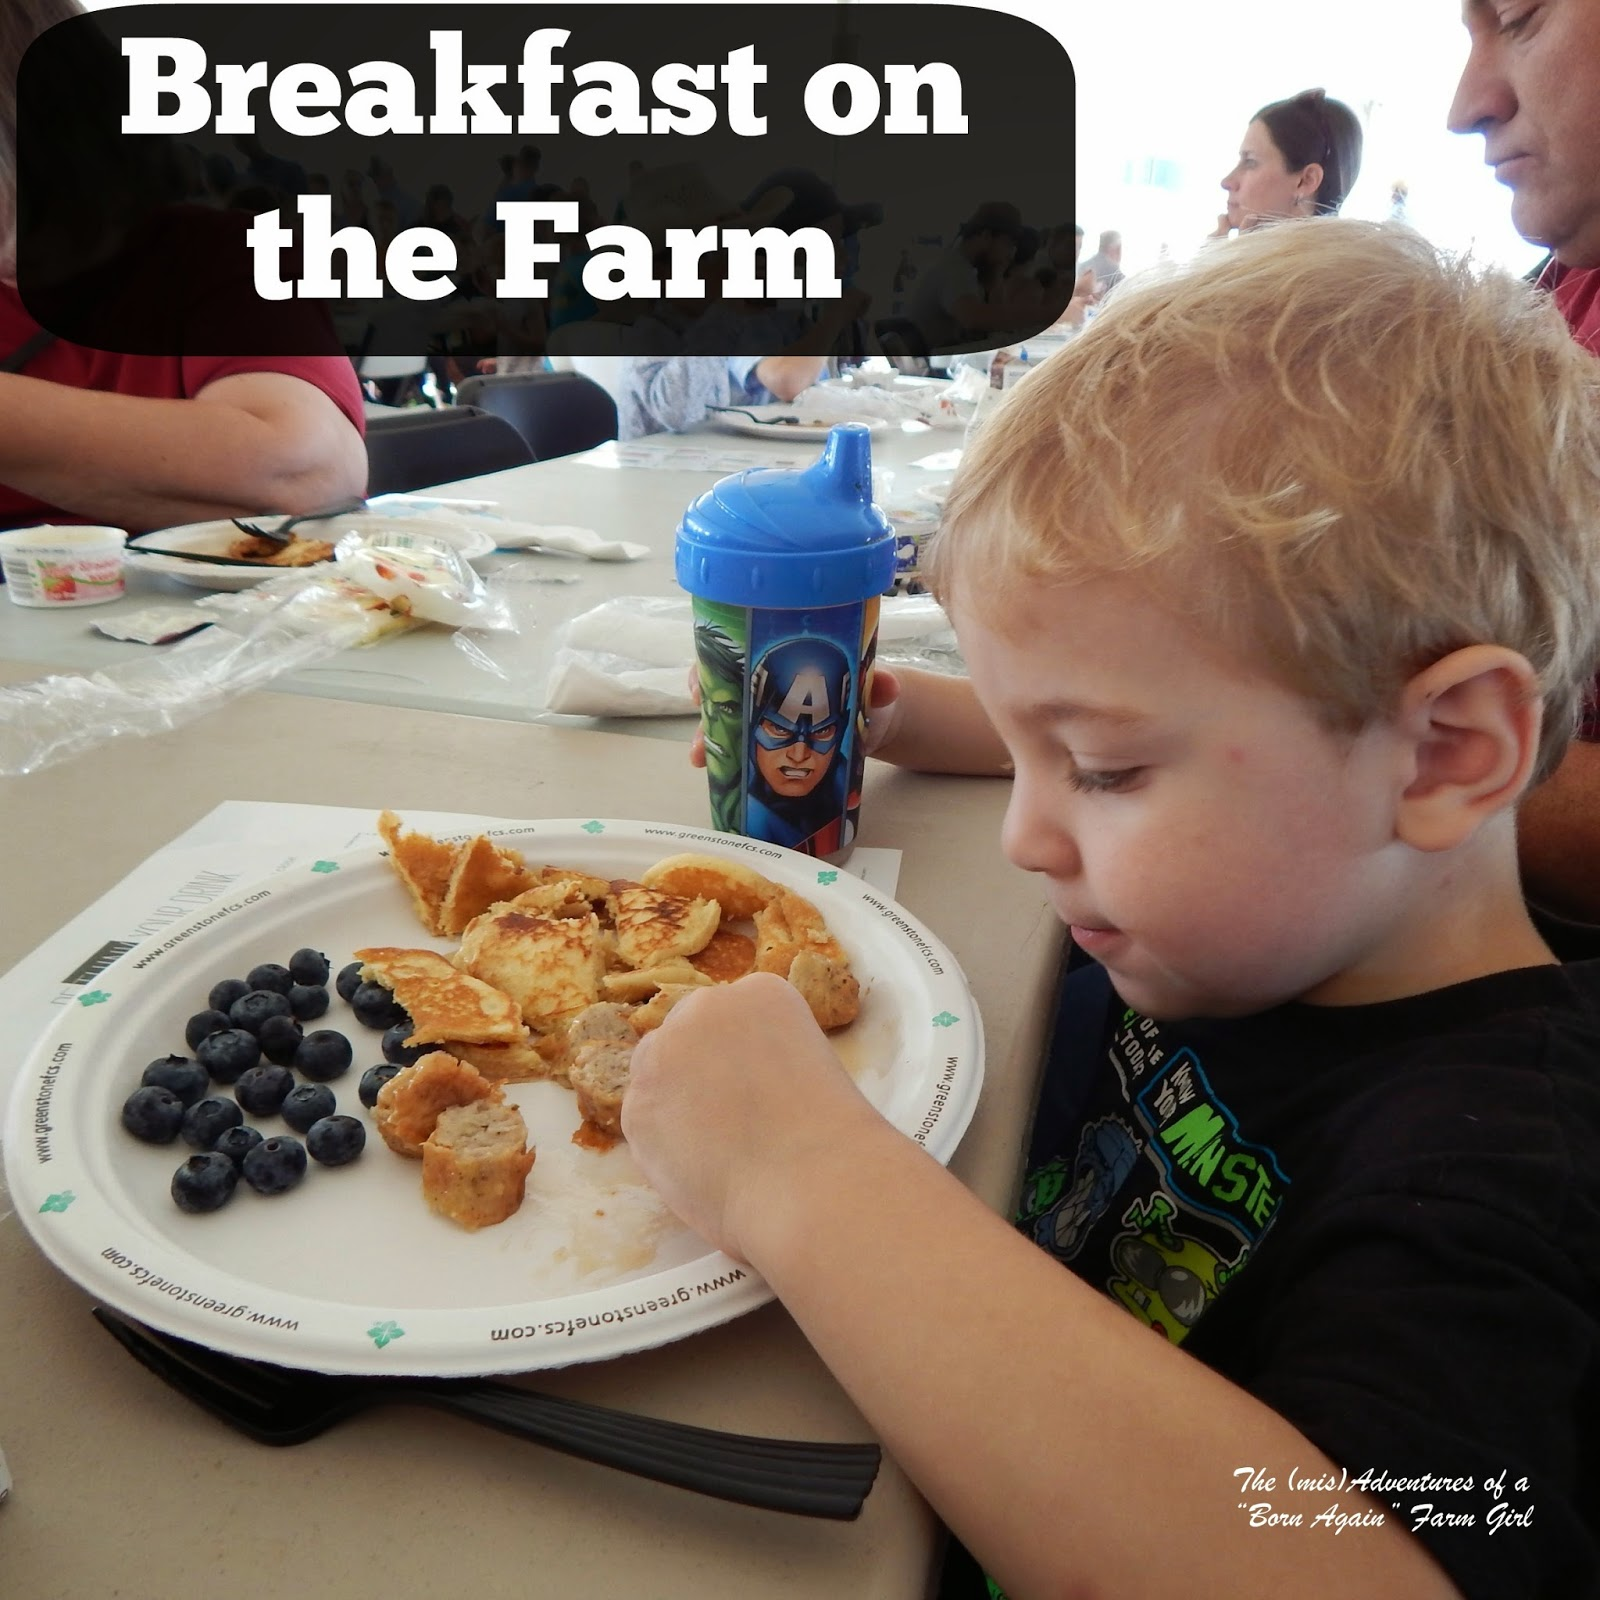 Breakfast on the Farm